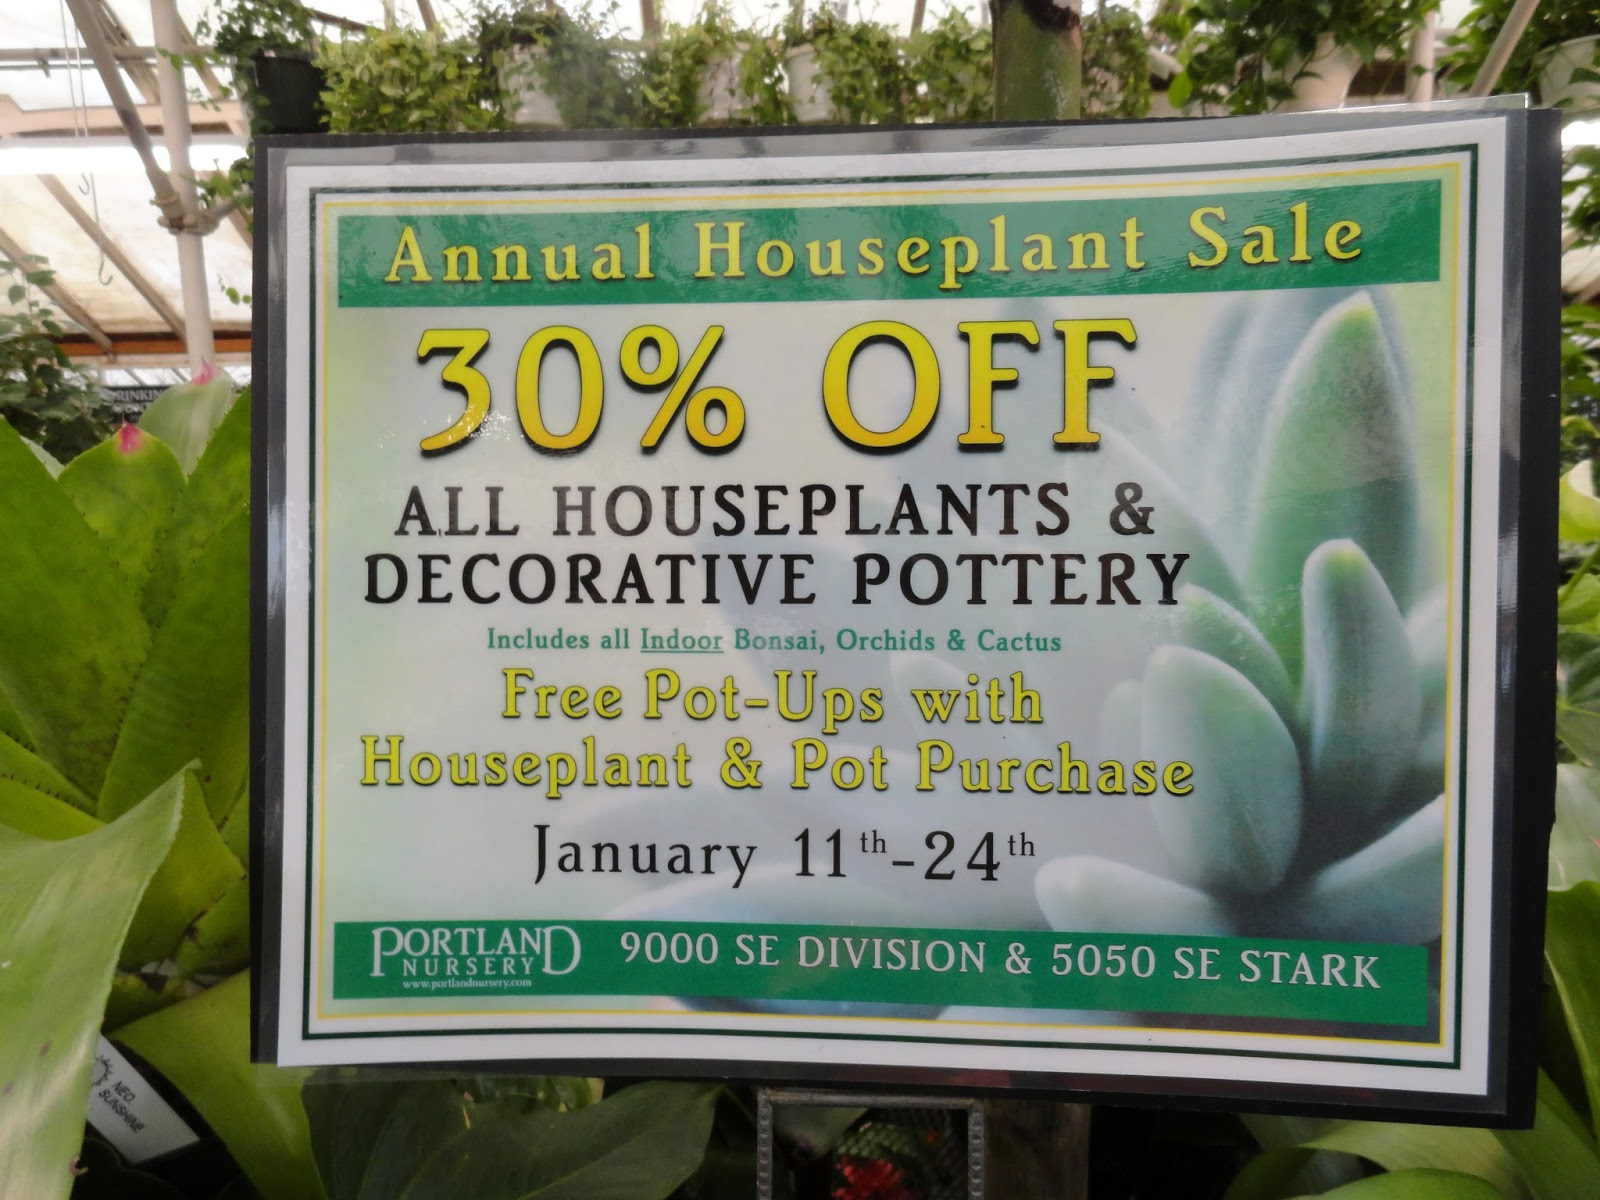 You Ve Got Until Closing On Wednesday January 24th To Get Either Or Both Portland Nursery Locations Enjoy 30 Off Their Houseplants And Containers